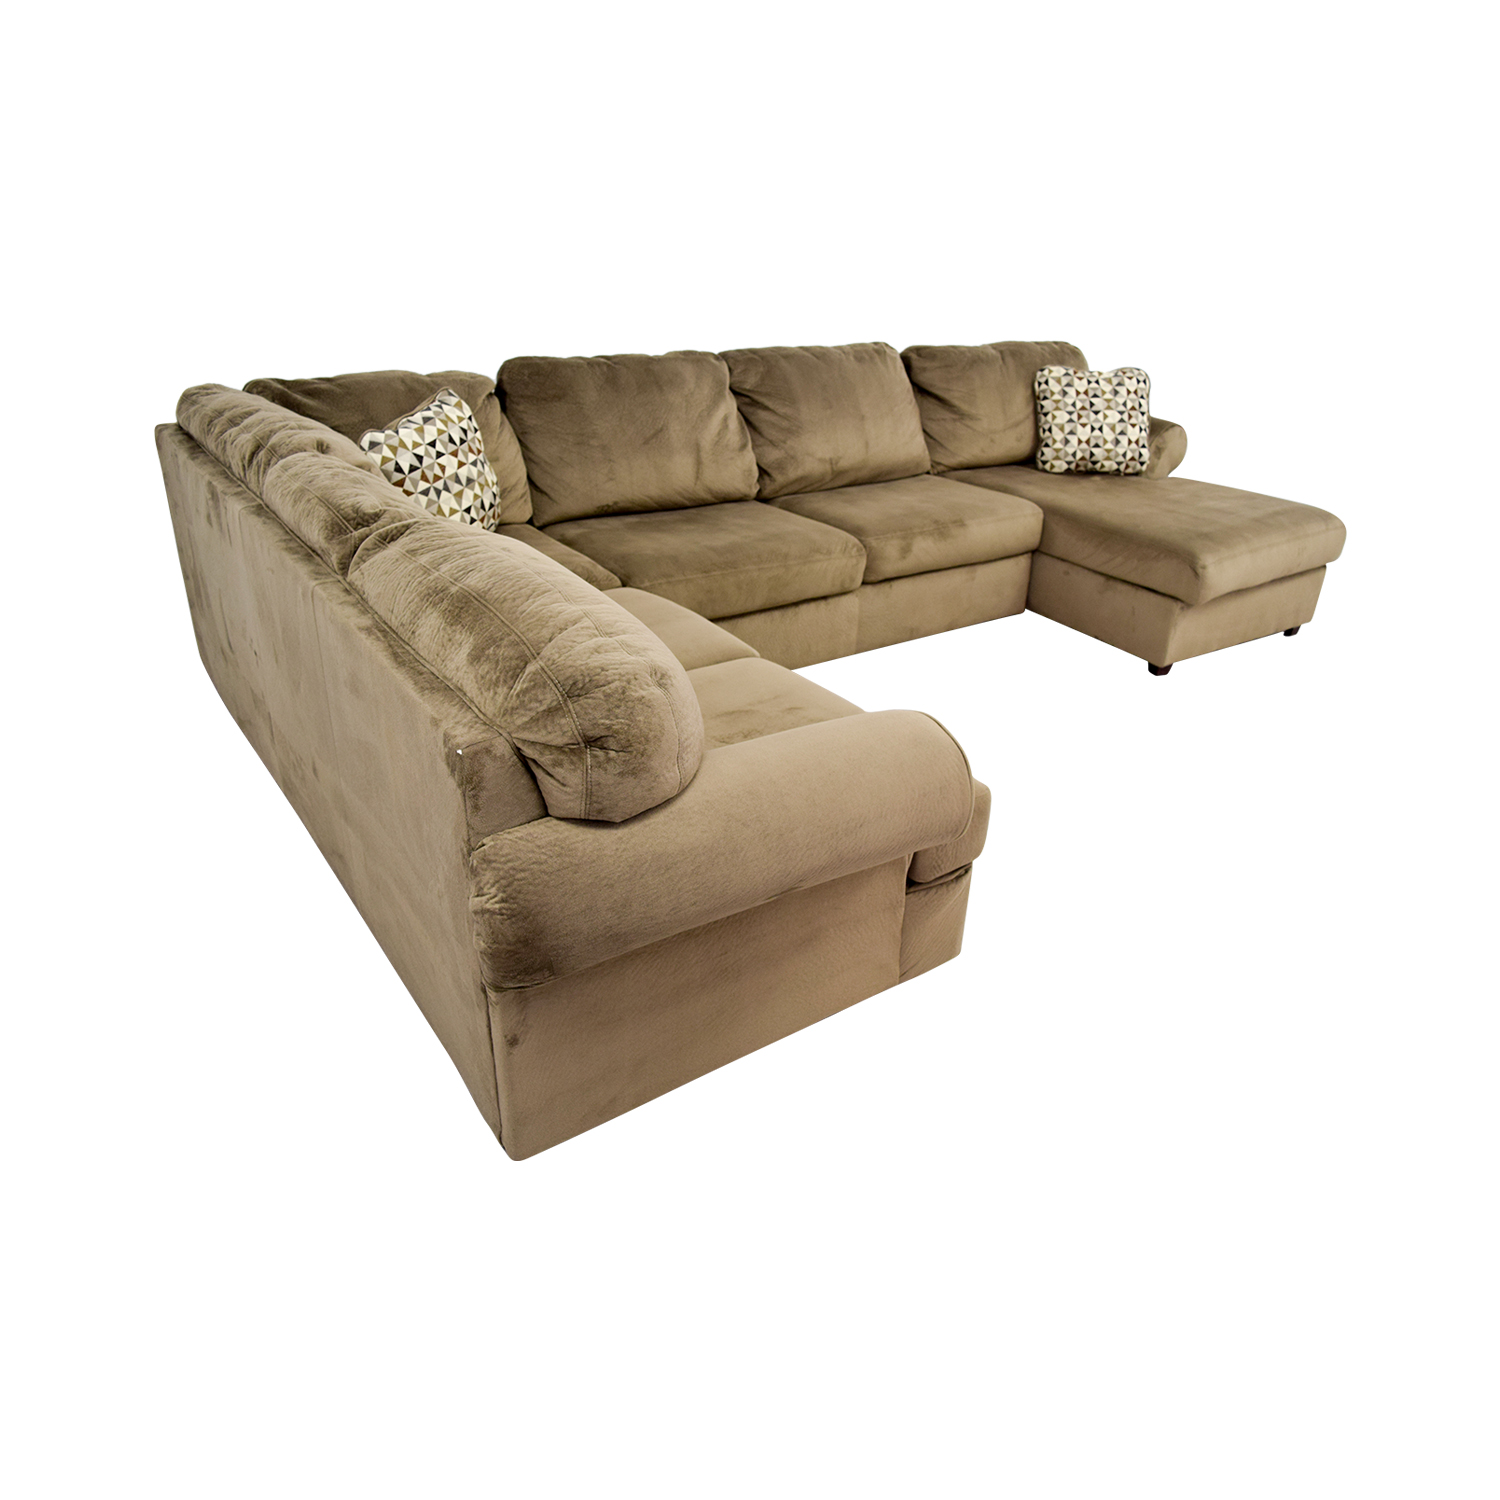 sectional sofas with recliners and bed memory foam sofa mattress topper 54% off - ashley furniture jessa place ...